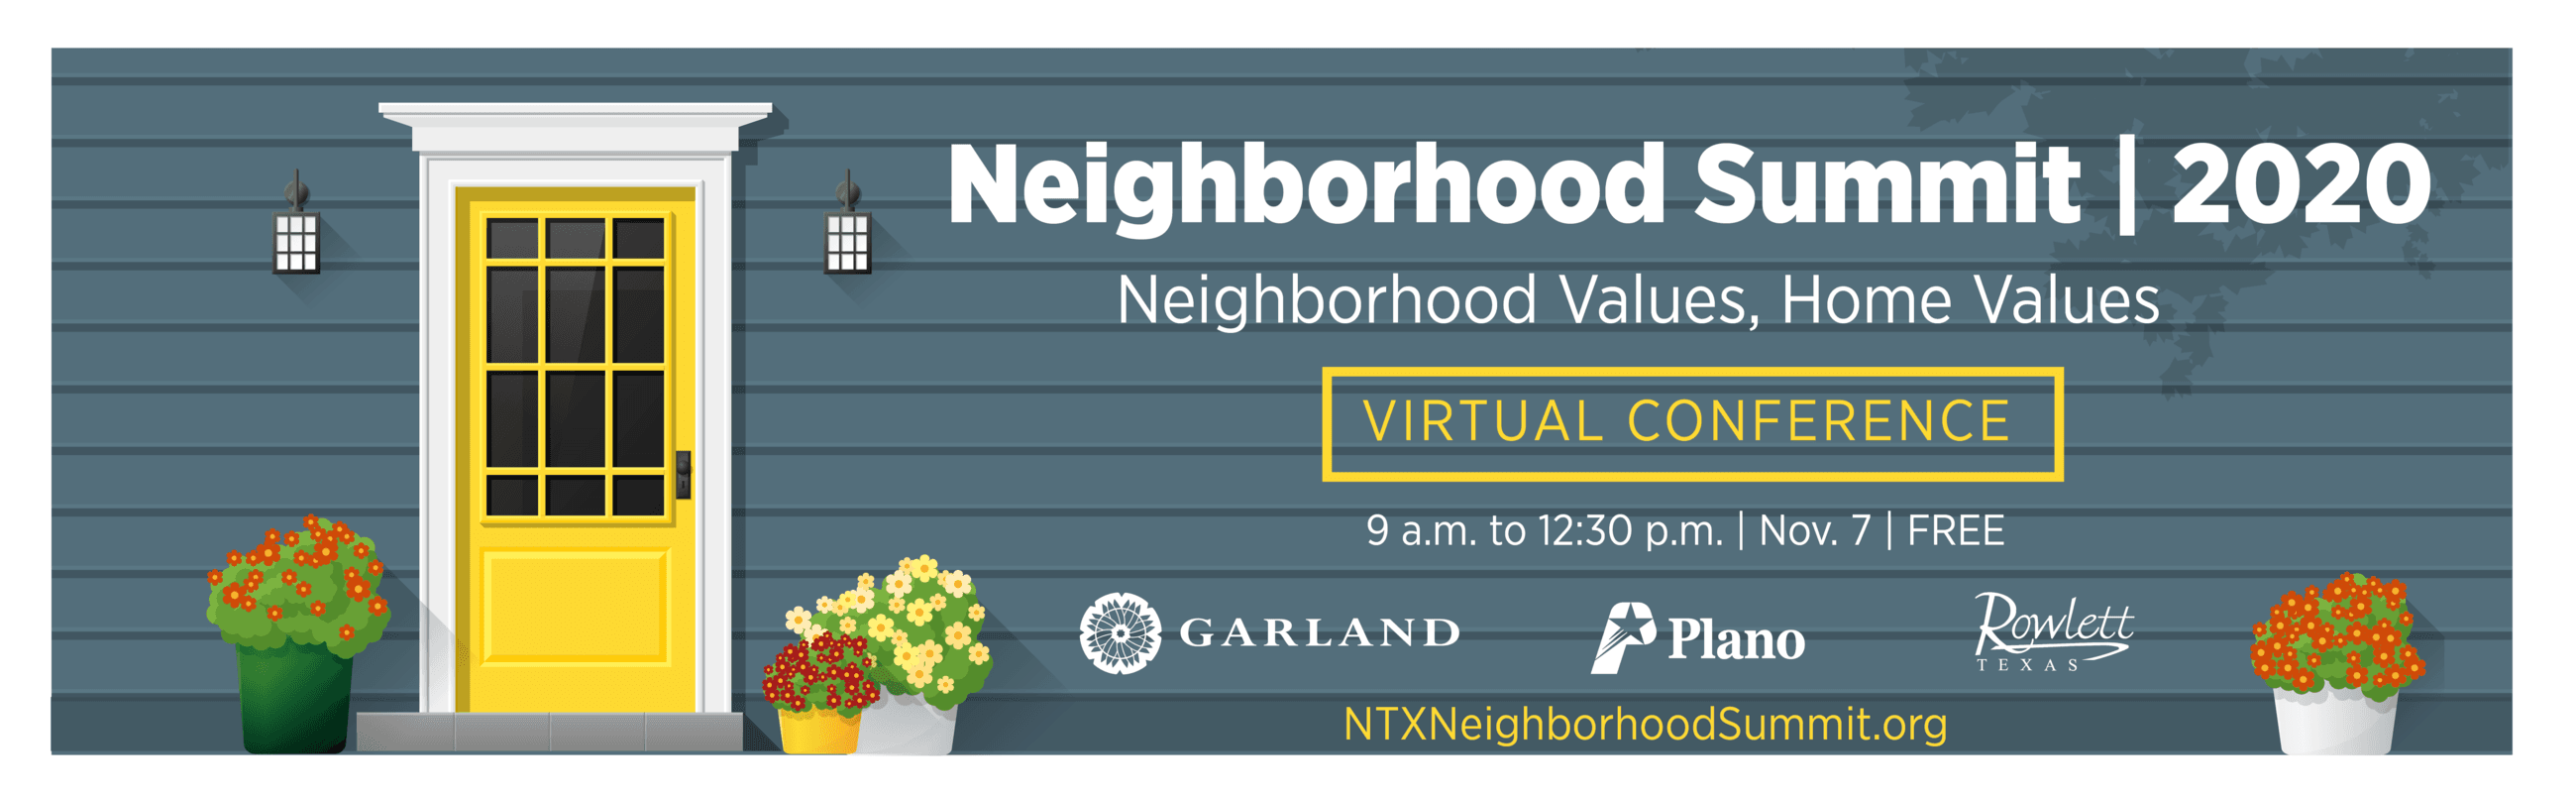 2020 Neighborhood Summit, Saturday, Nov. 7, 9 a.m. to 12:30 p.m. | Virtual Conference | FREE